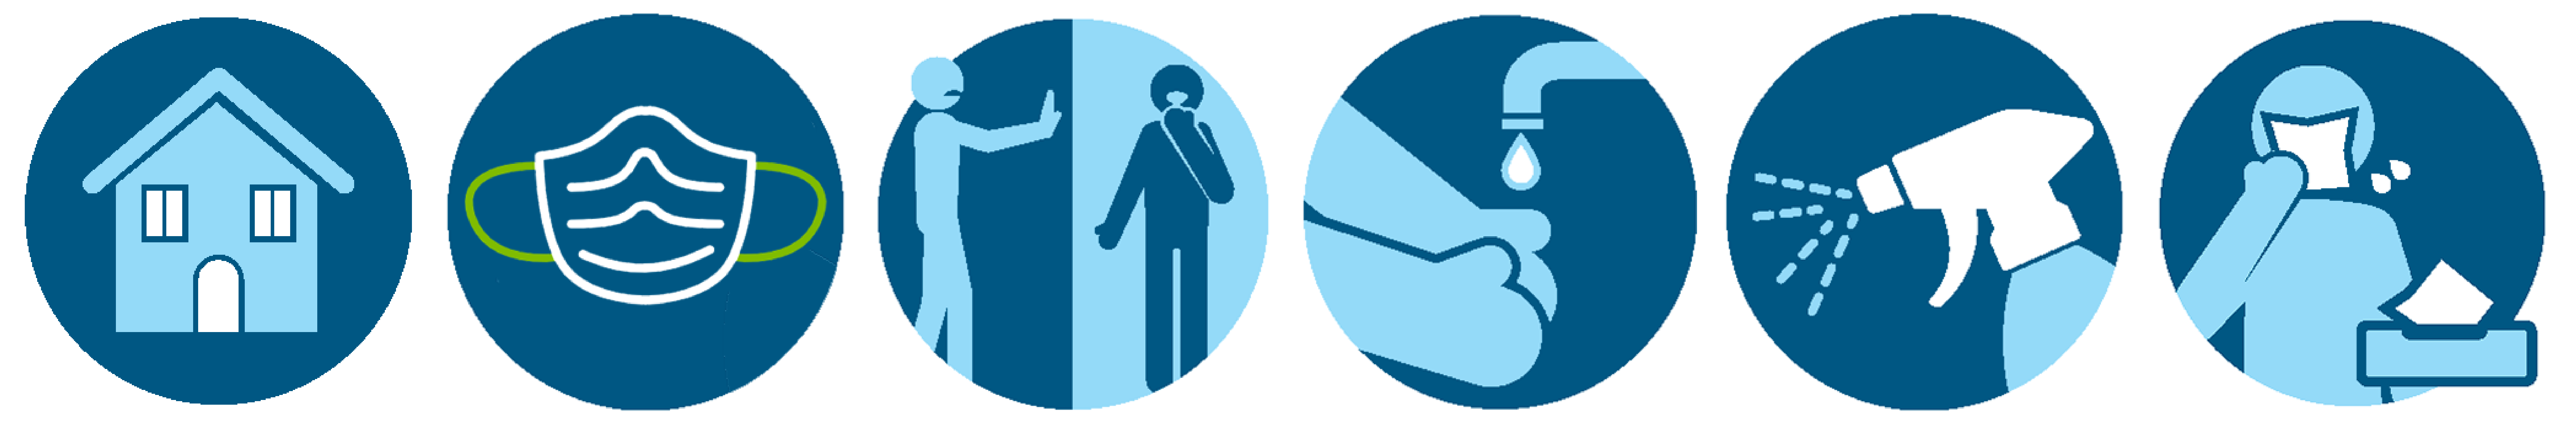 COVID Prevention Icons